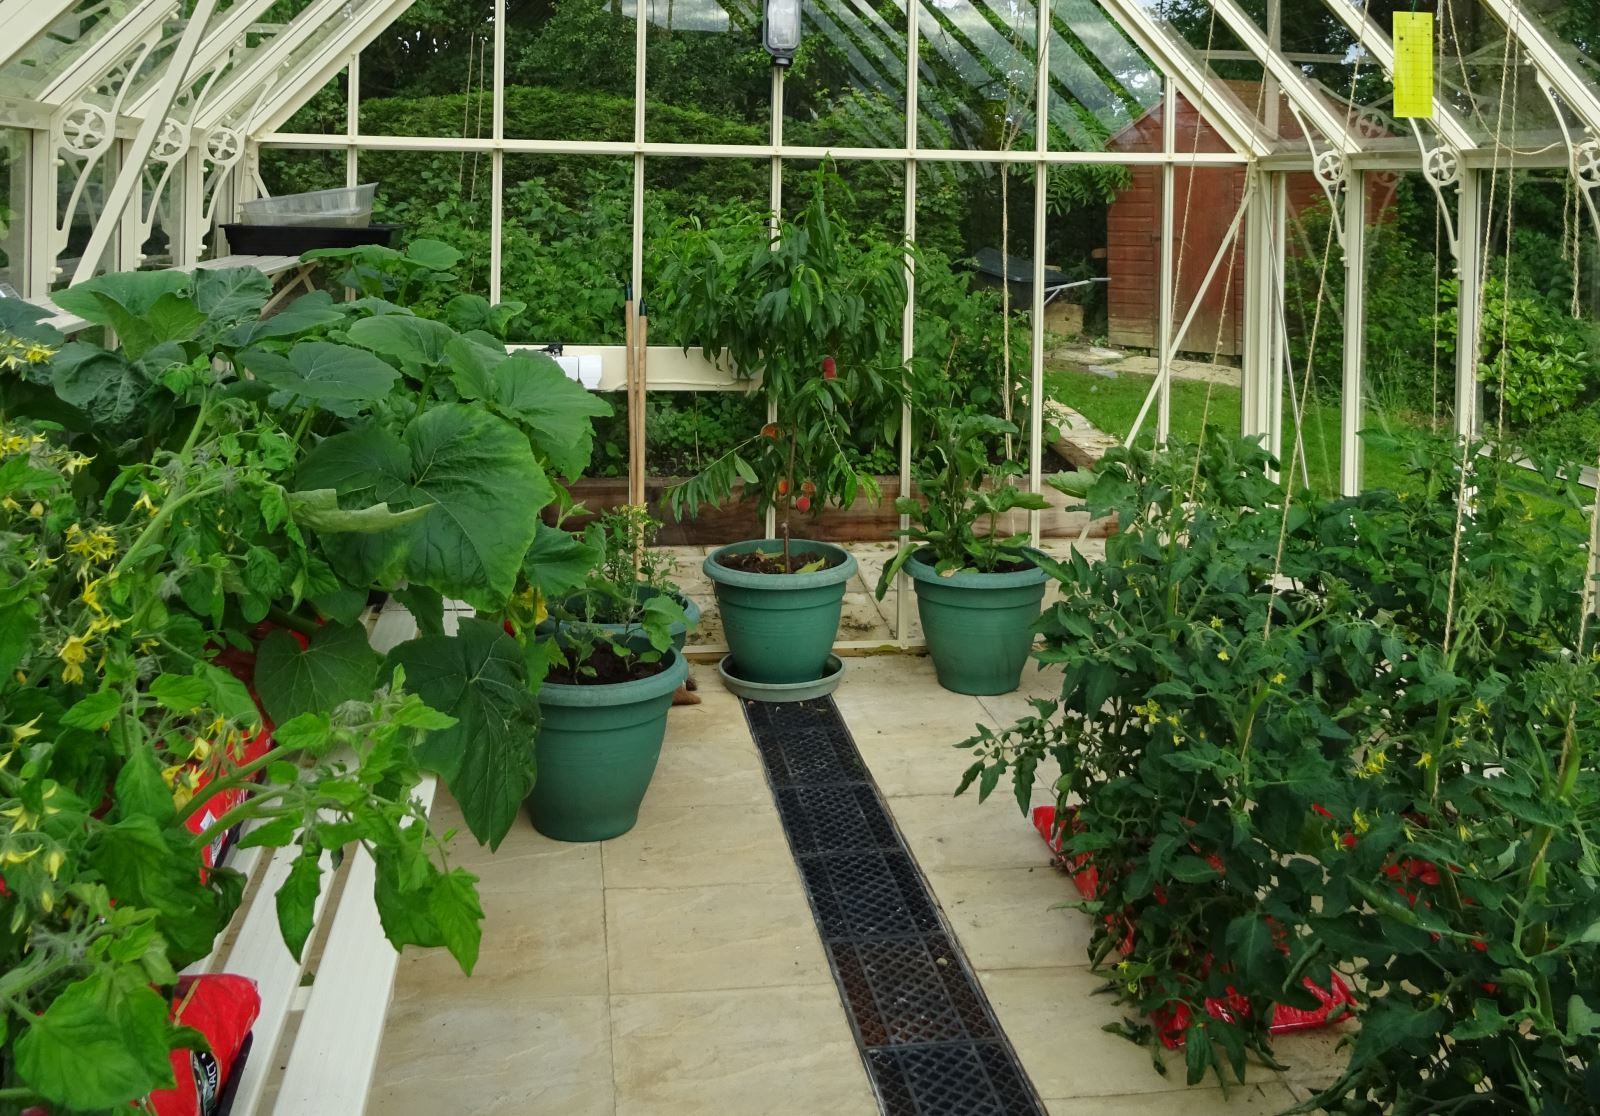 Cucumber and Tomato plants in a Robinsons Reigate greenhouse